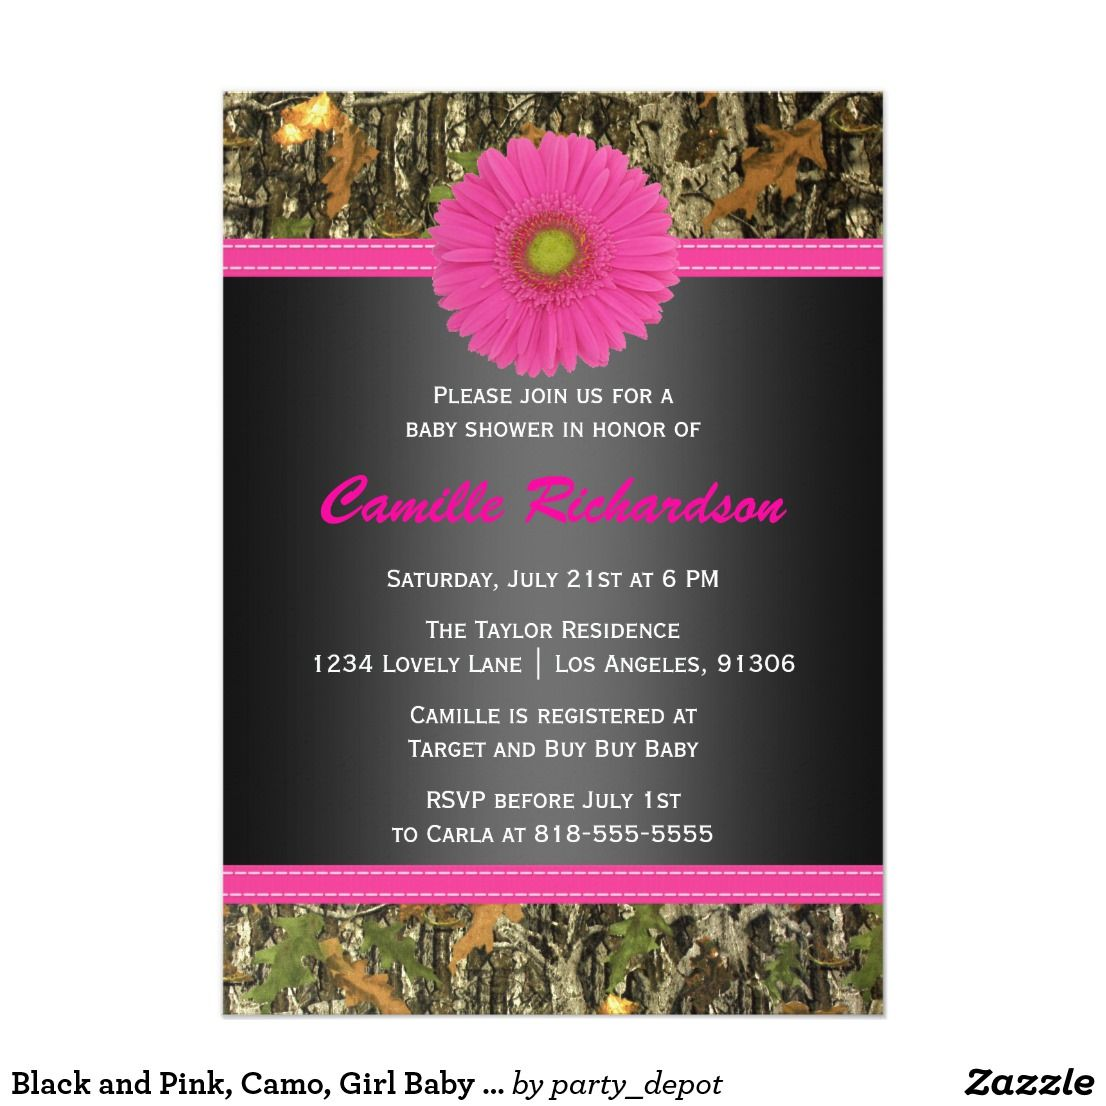 Black and Pink, Camo, Girl Baby Shower Invitation If you need custom ...